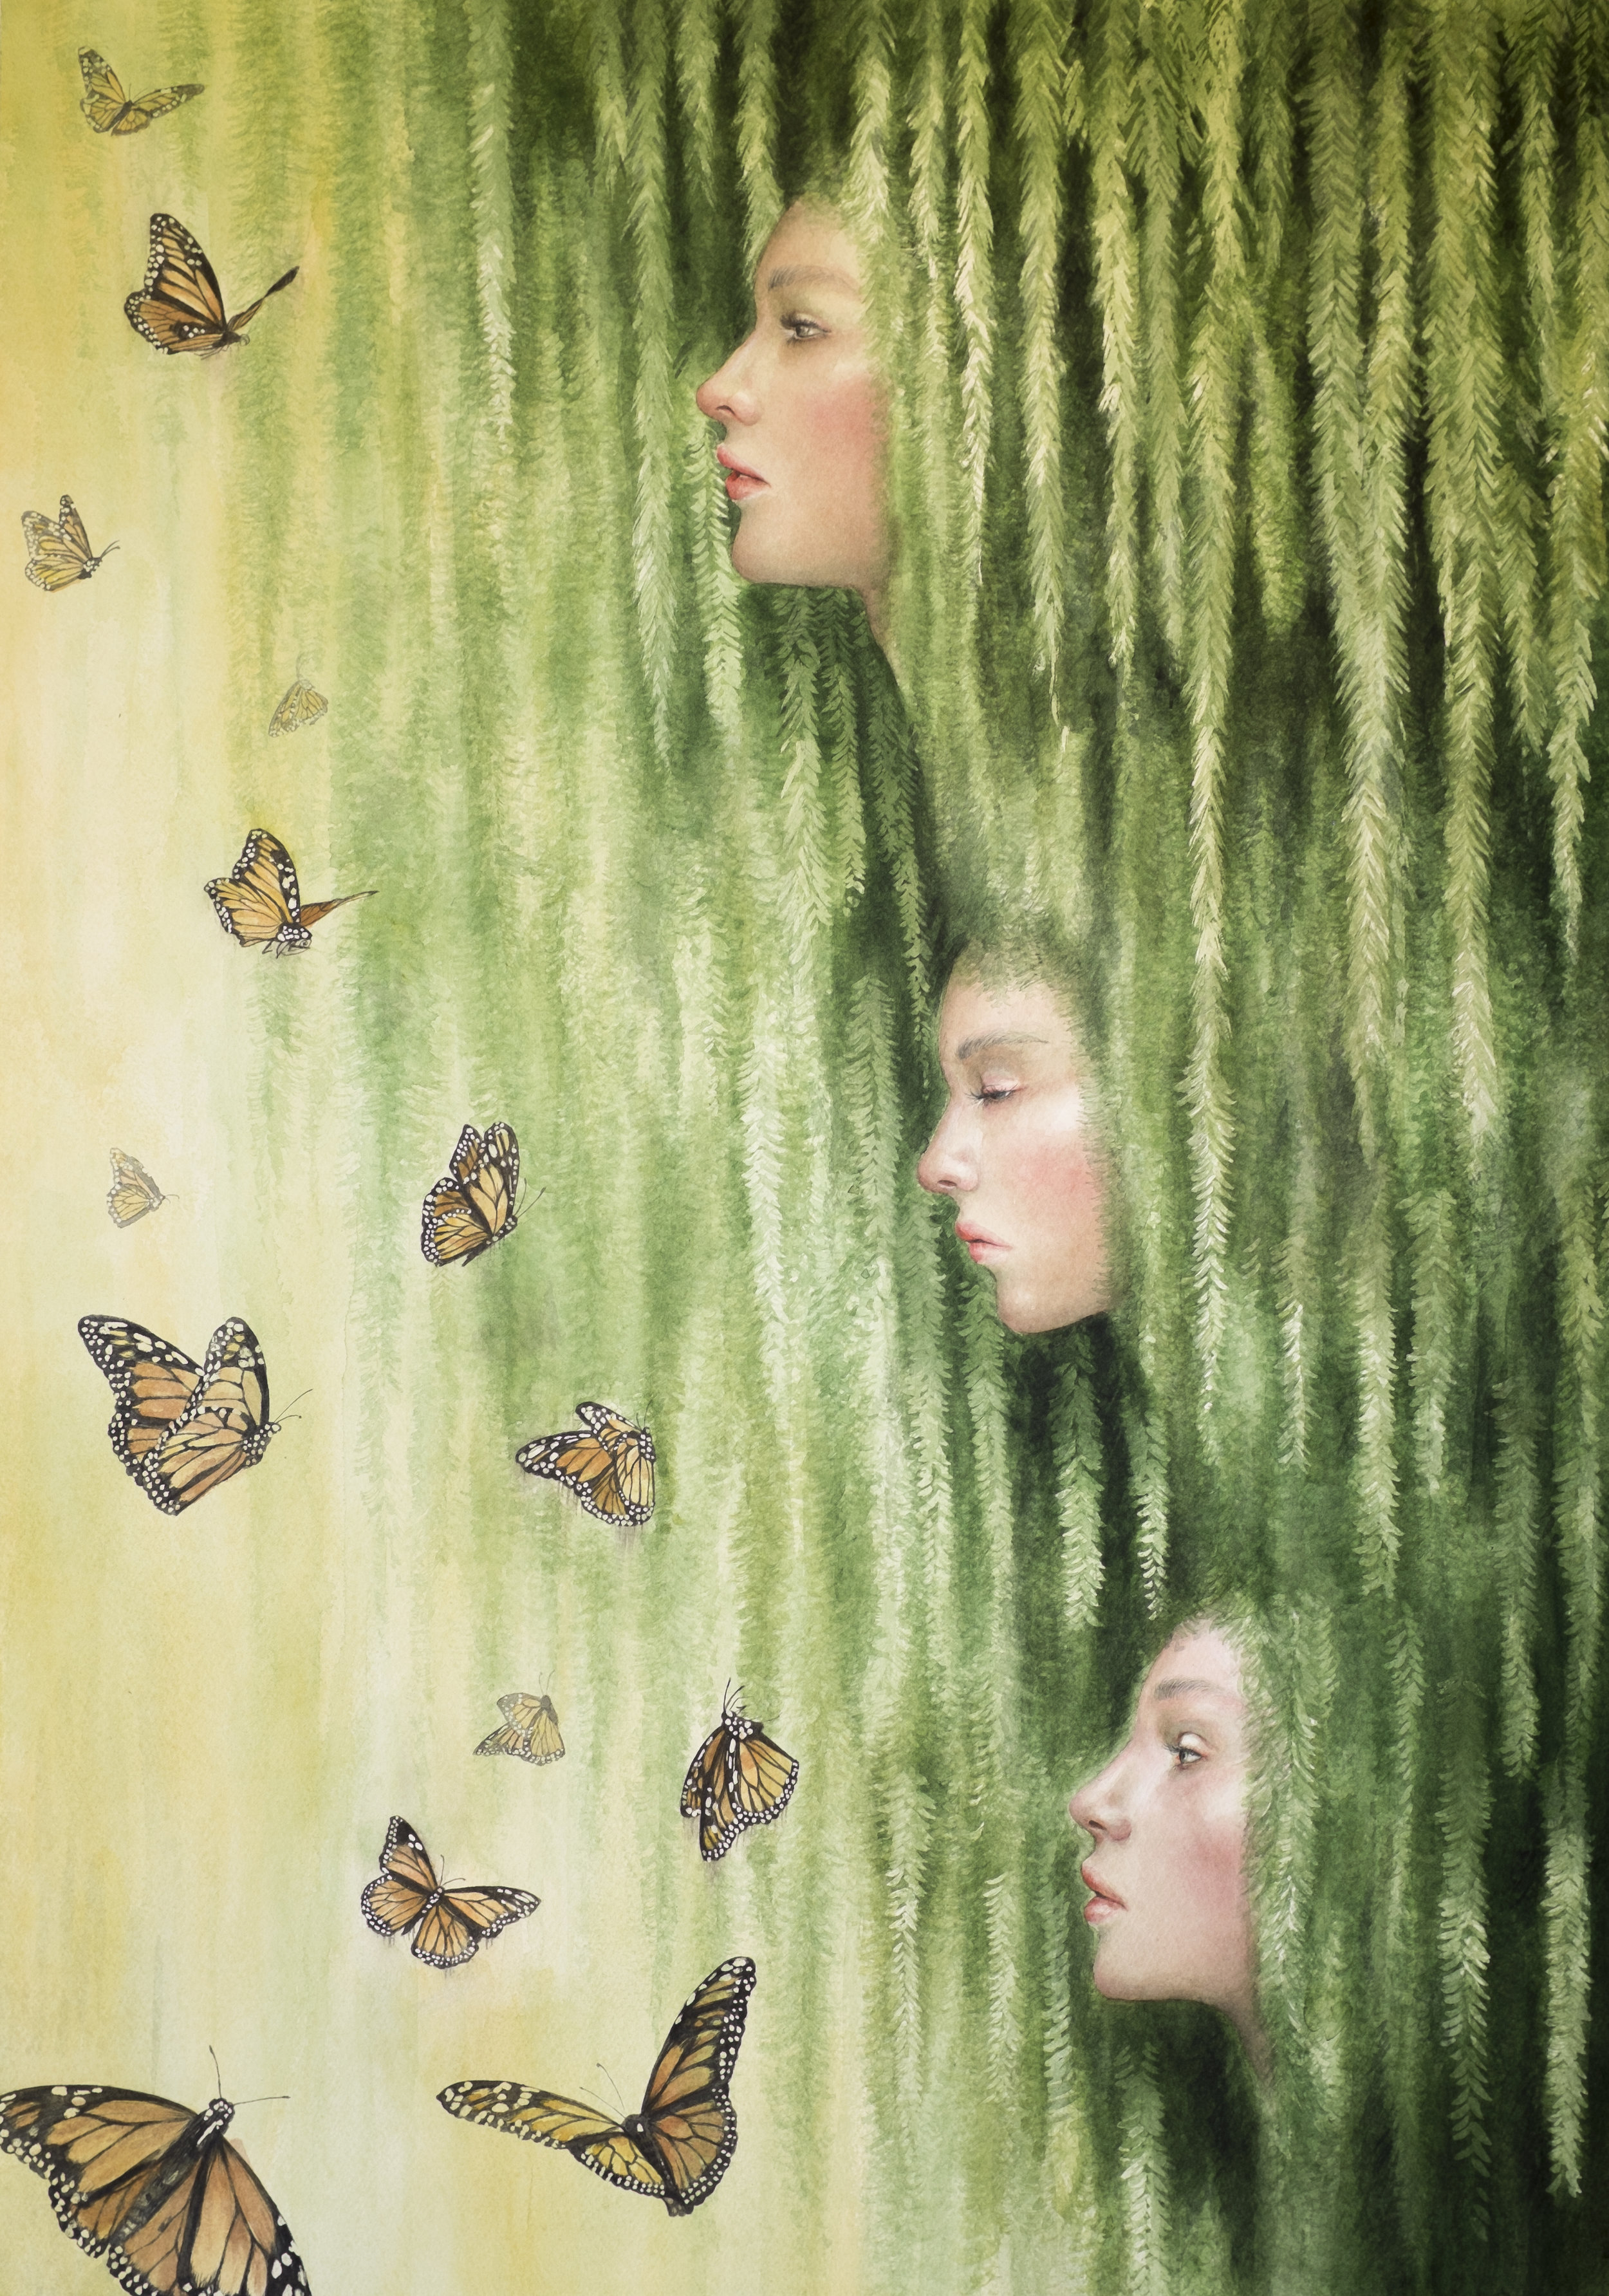 The 3 willow sisters